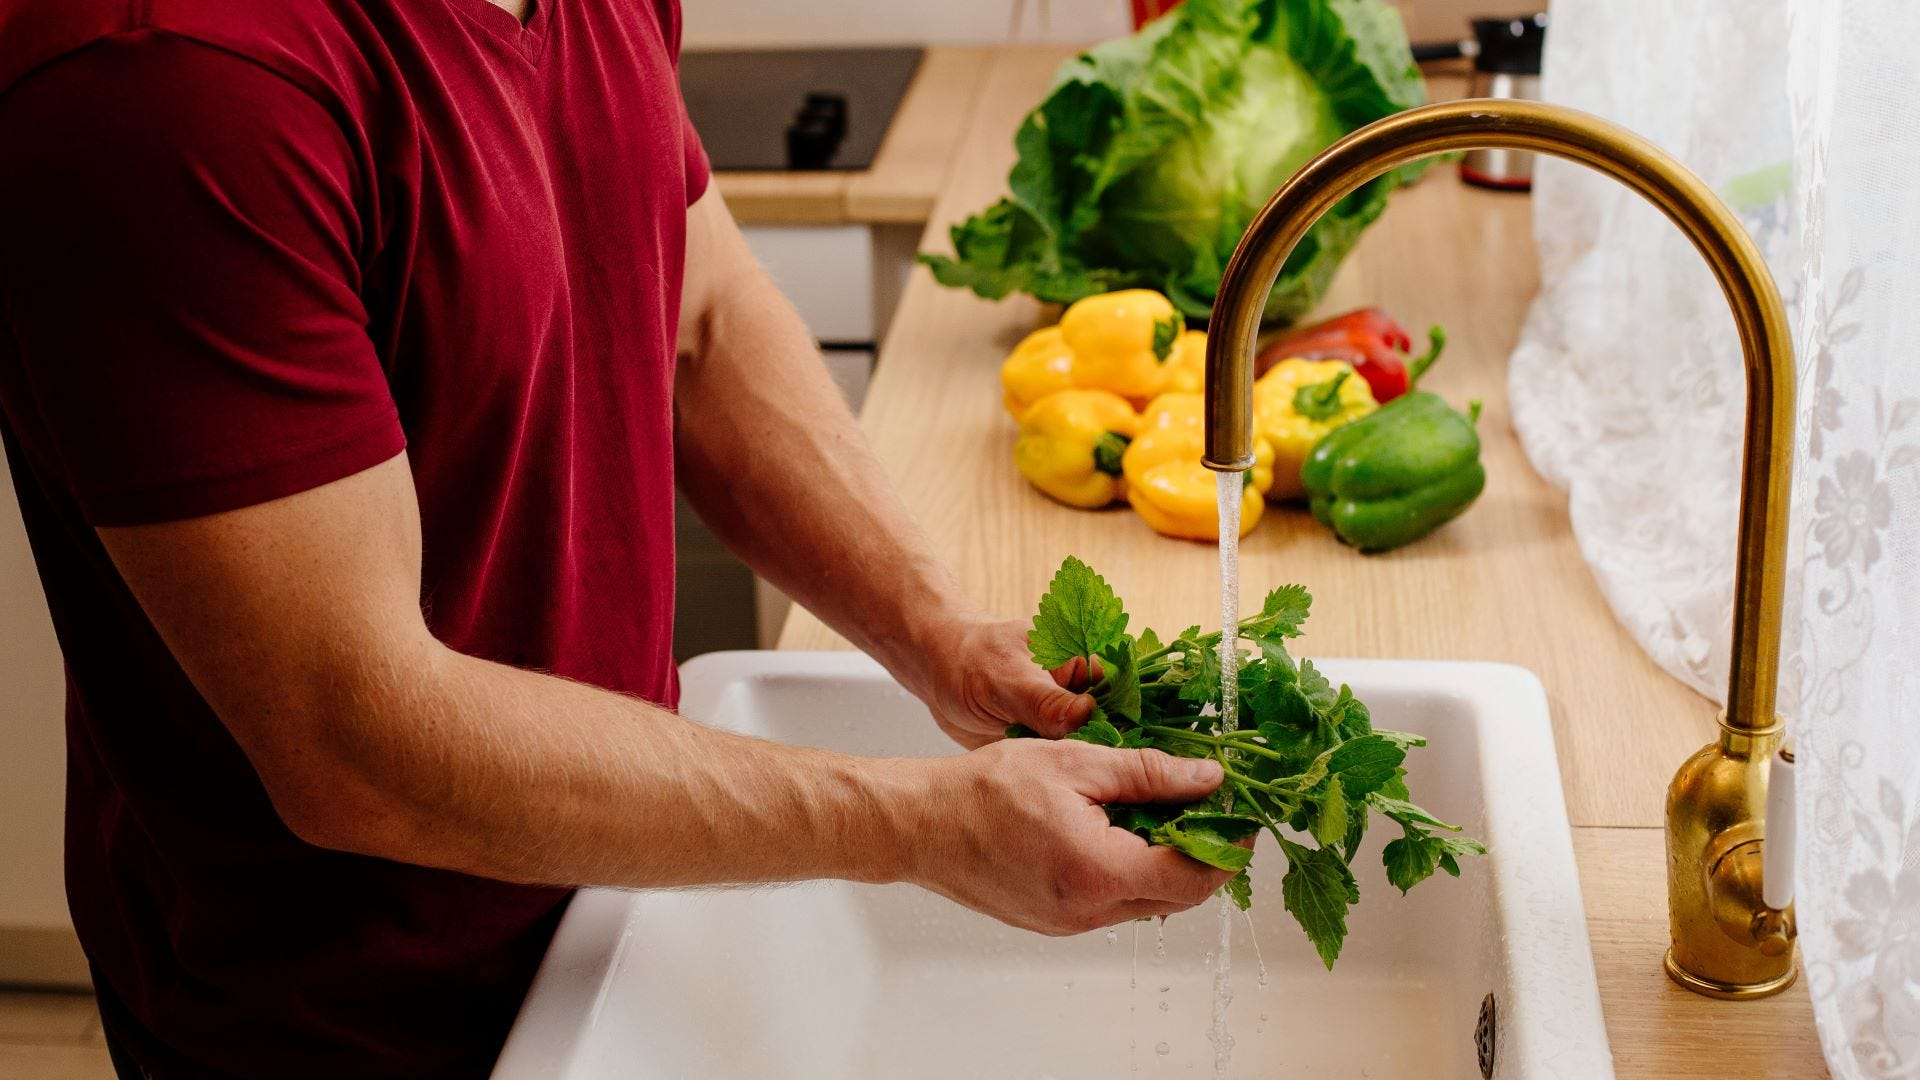 A man rinsing fresh mint leaves under a kitchen faucet.